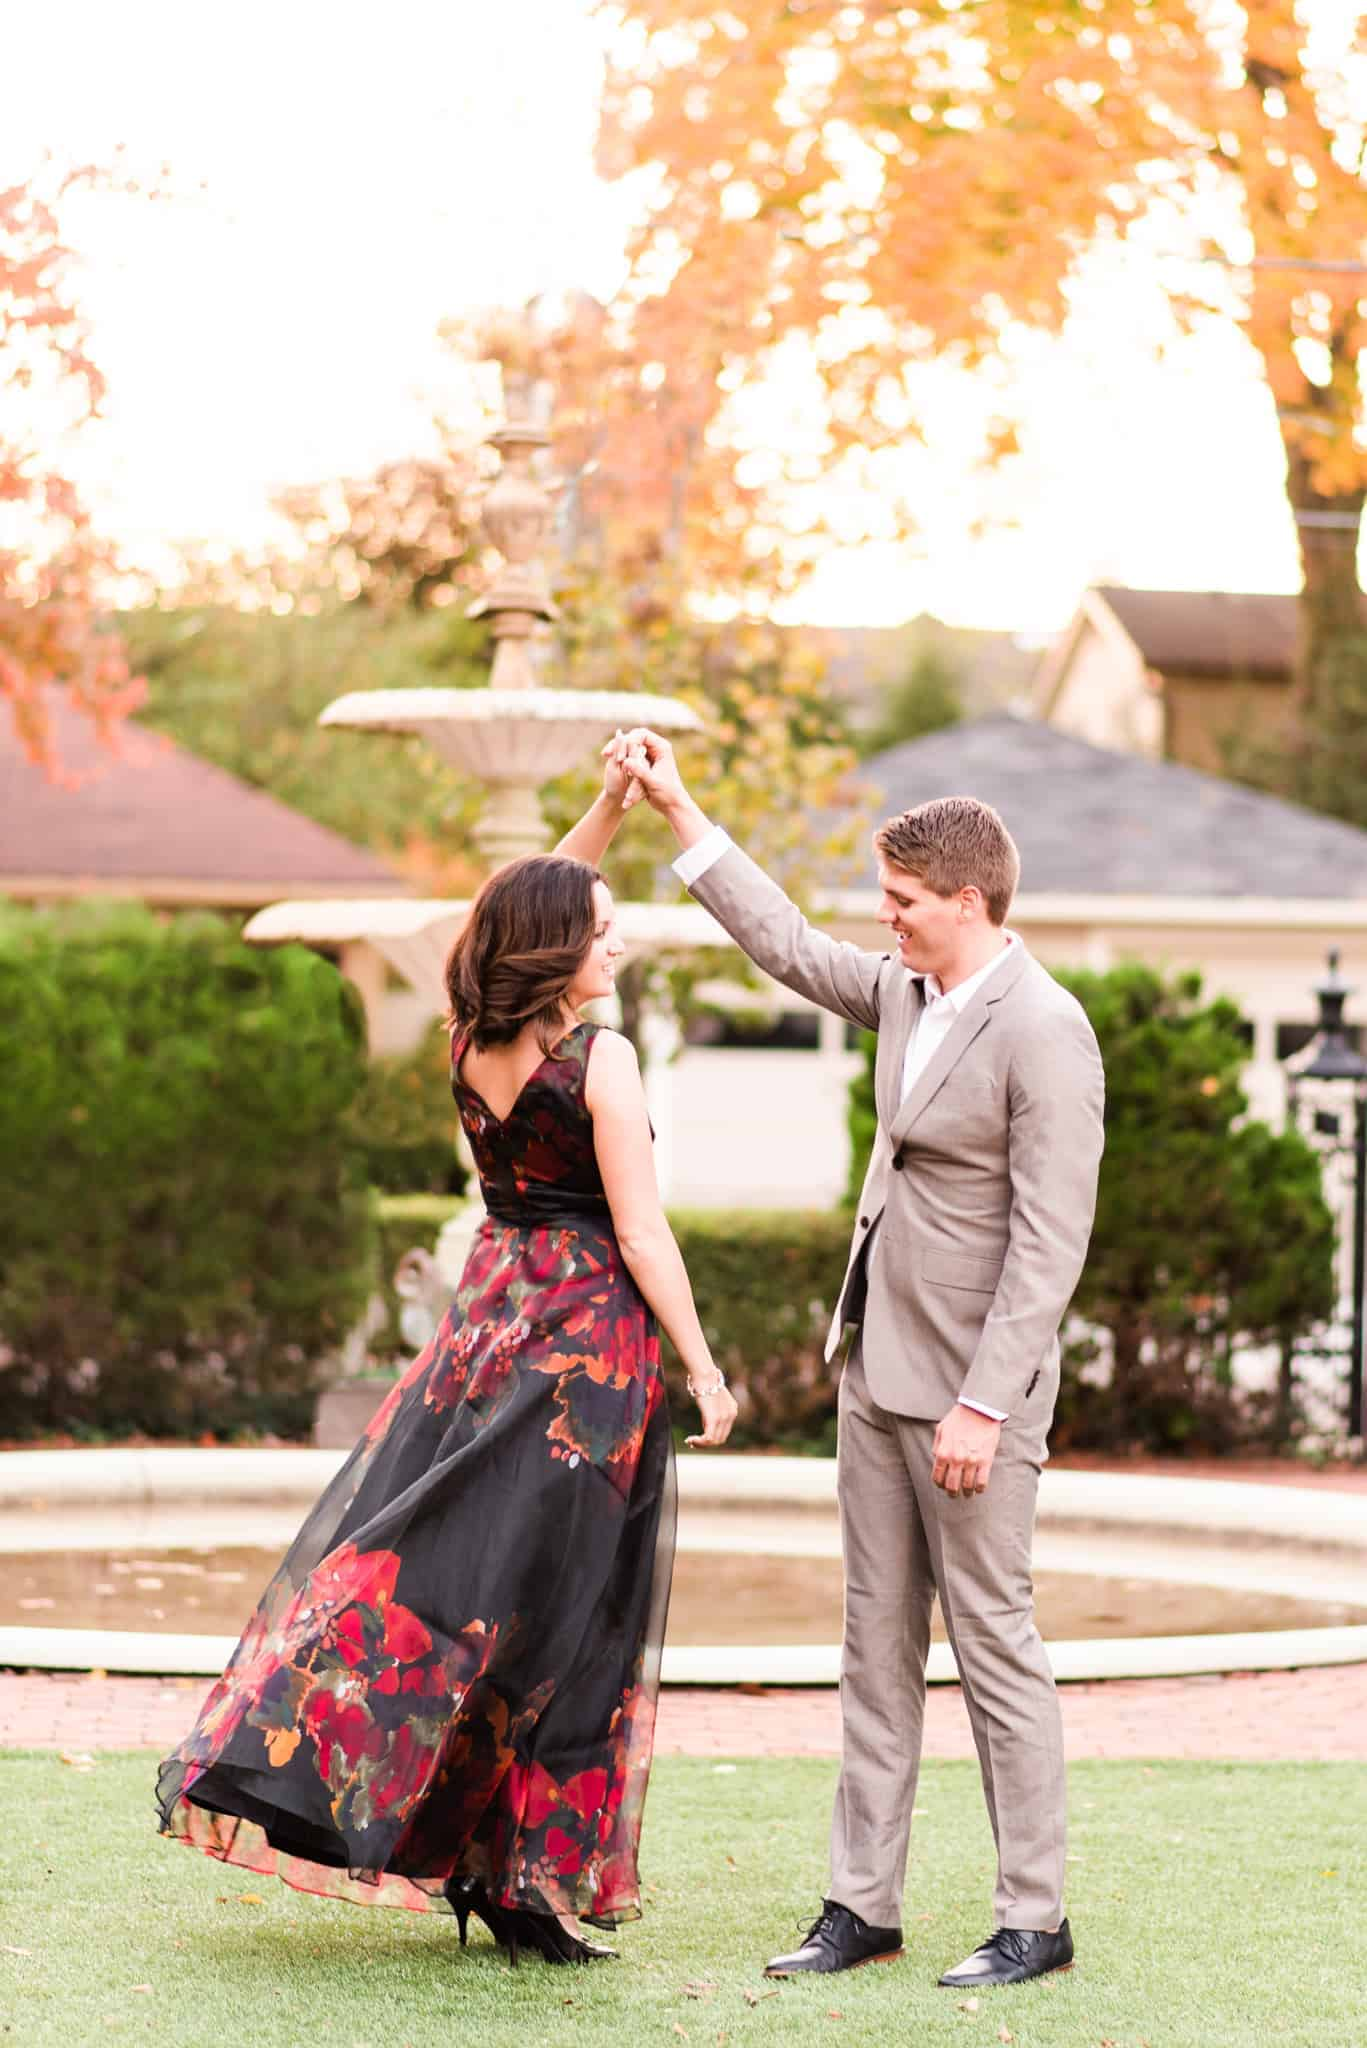 The classy dress, the charming courtyard, the romantic light - this engagement session was my definition of perfect.